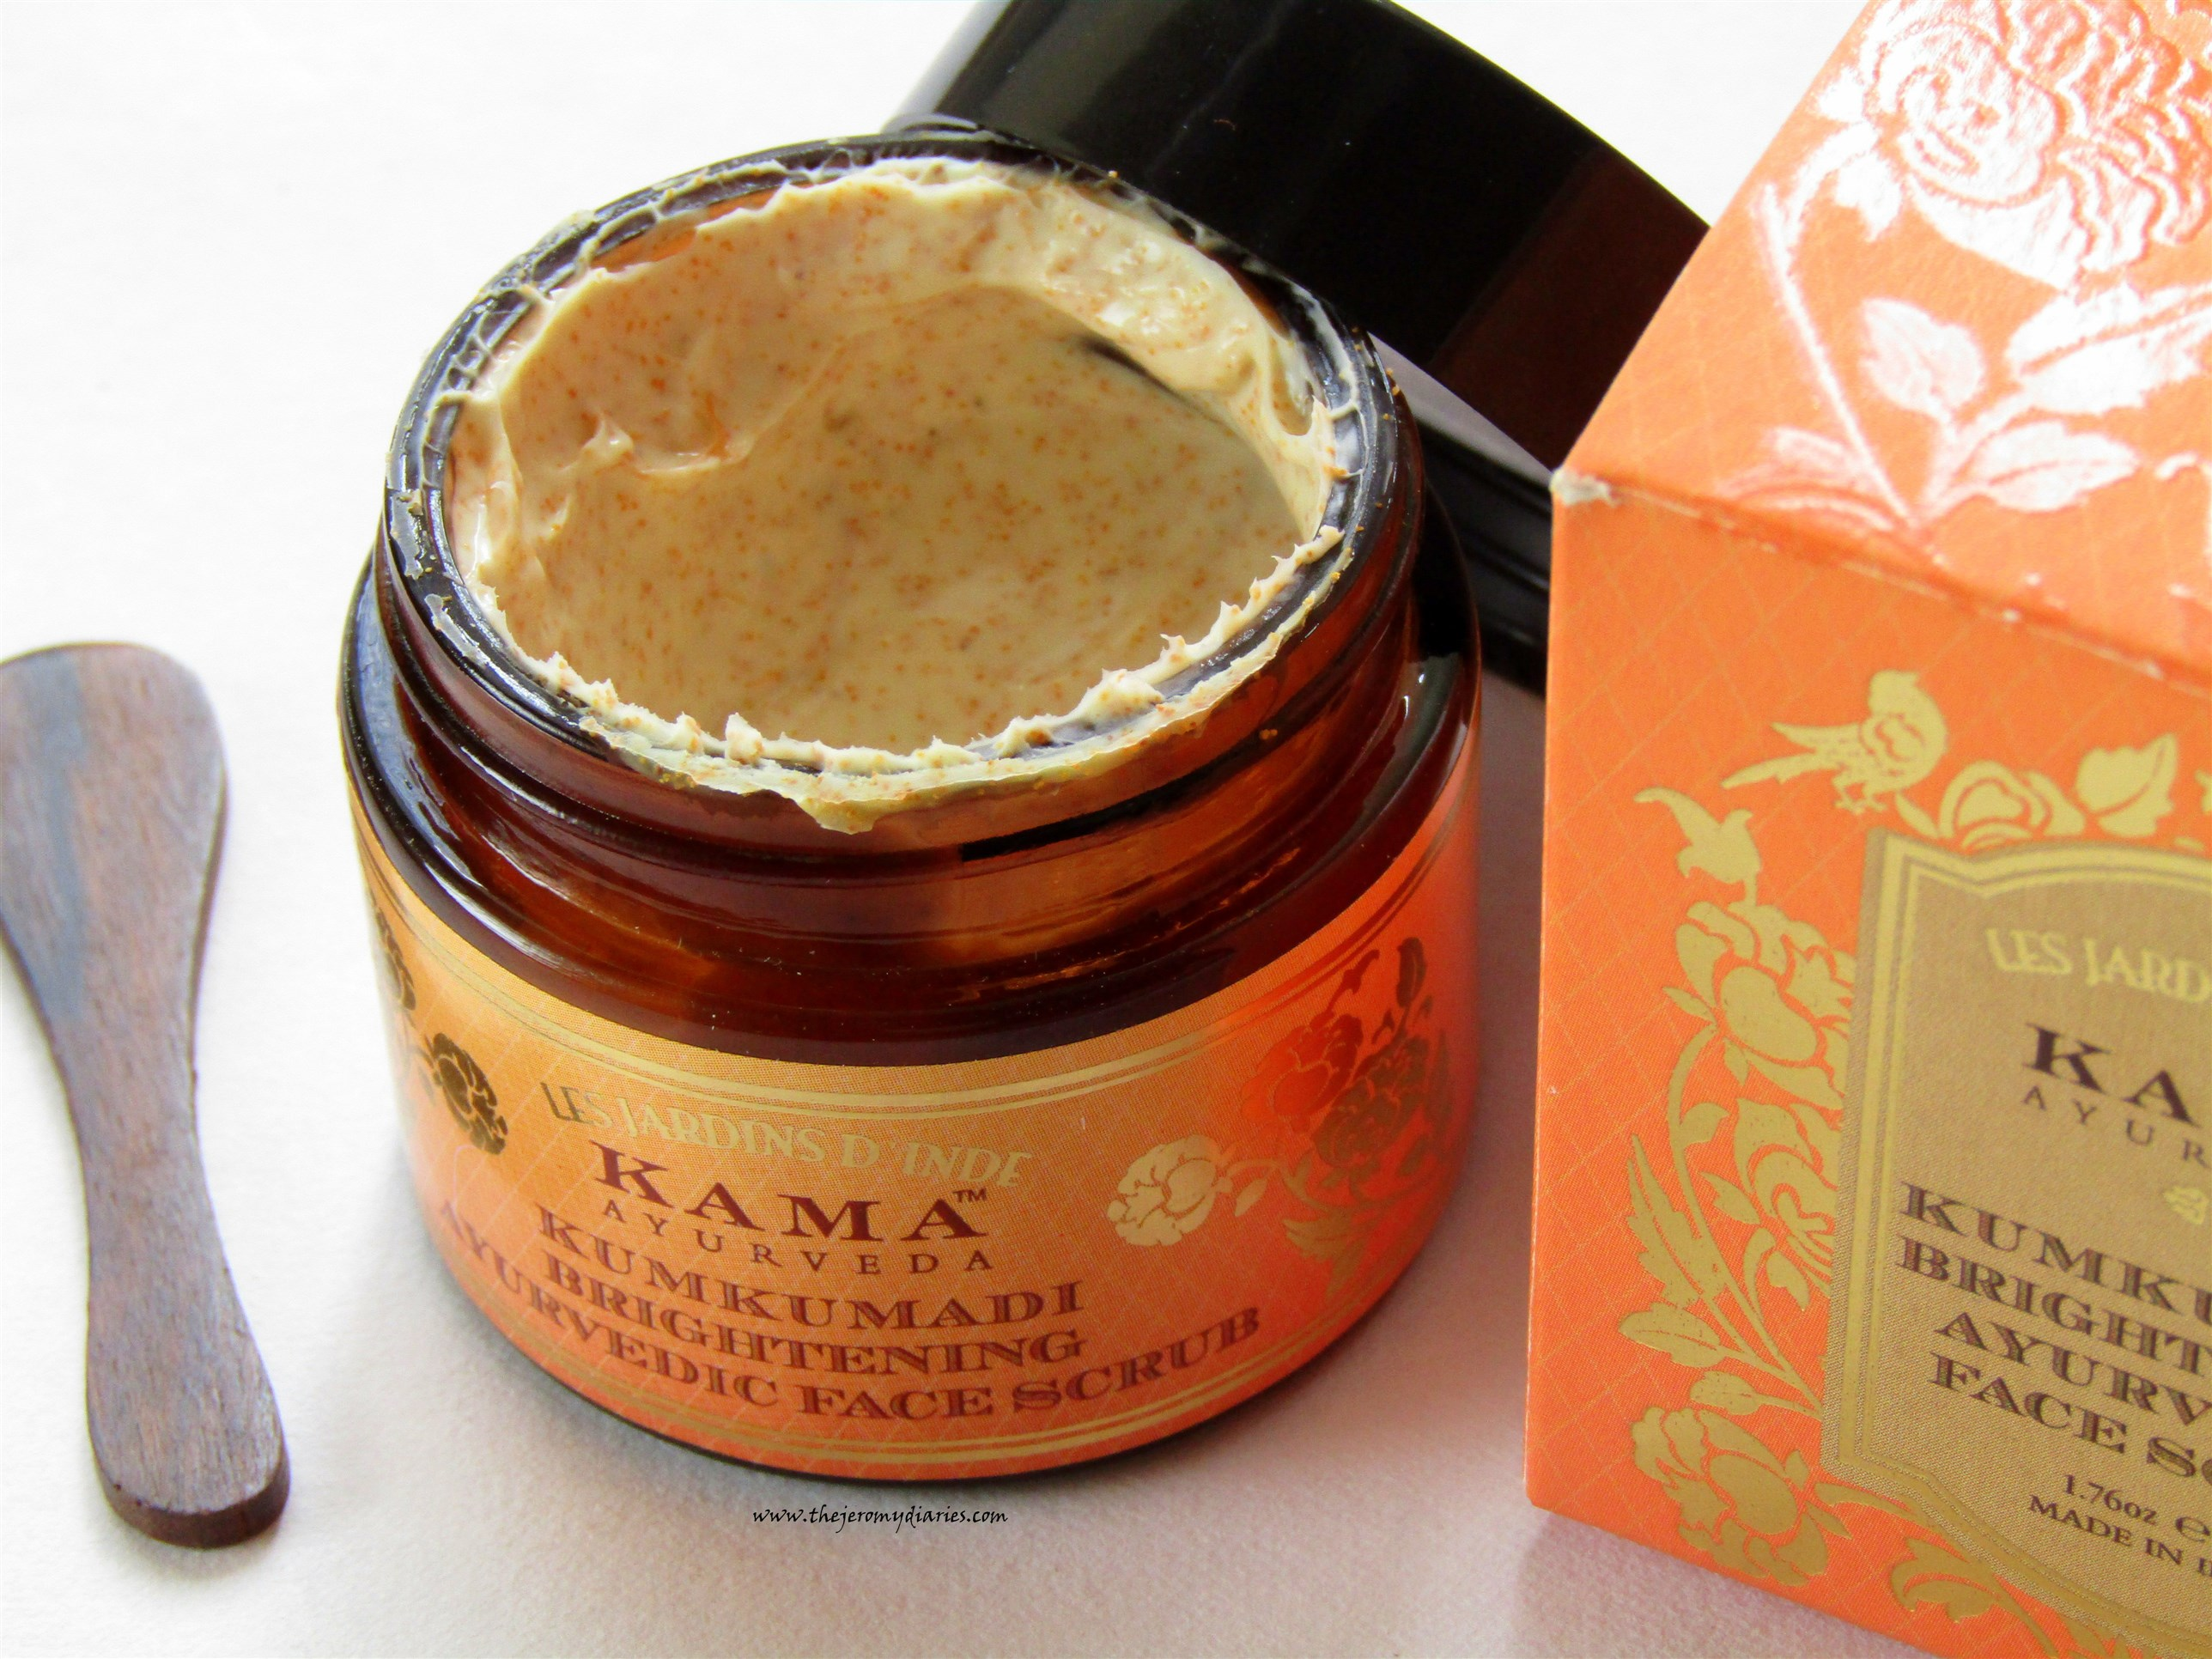 kama ayurveda kumkumadi brightening face scrub price in india the jeromy diaries